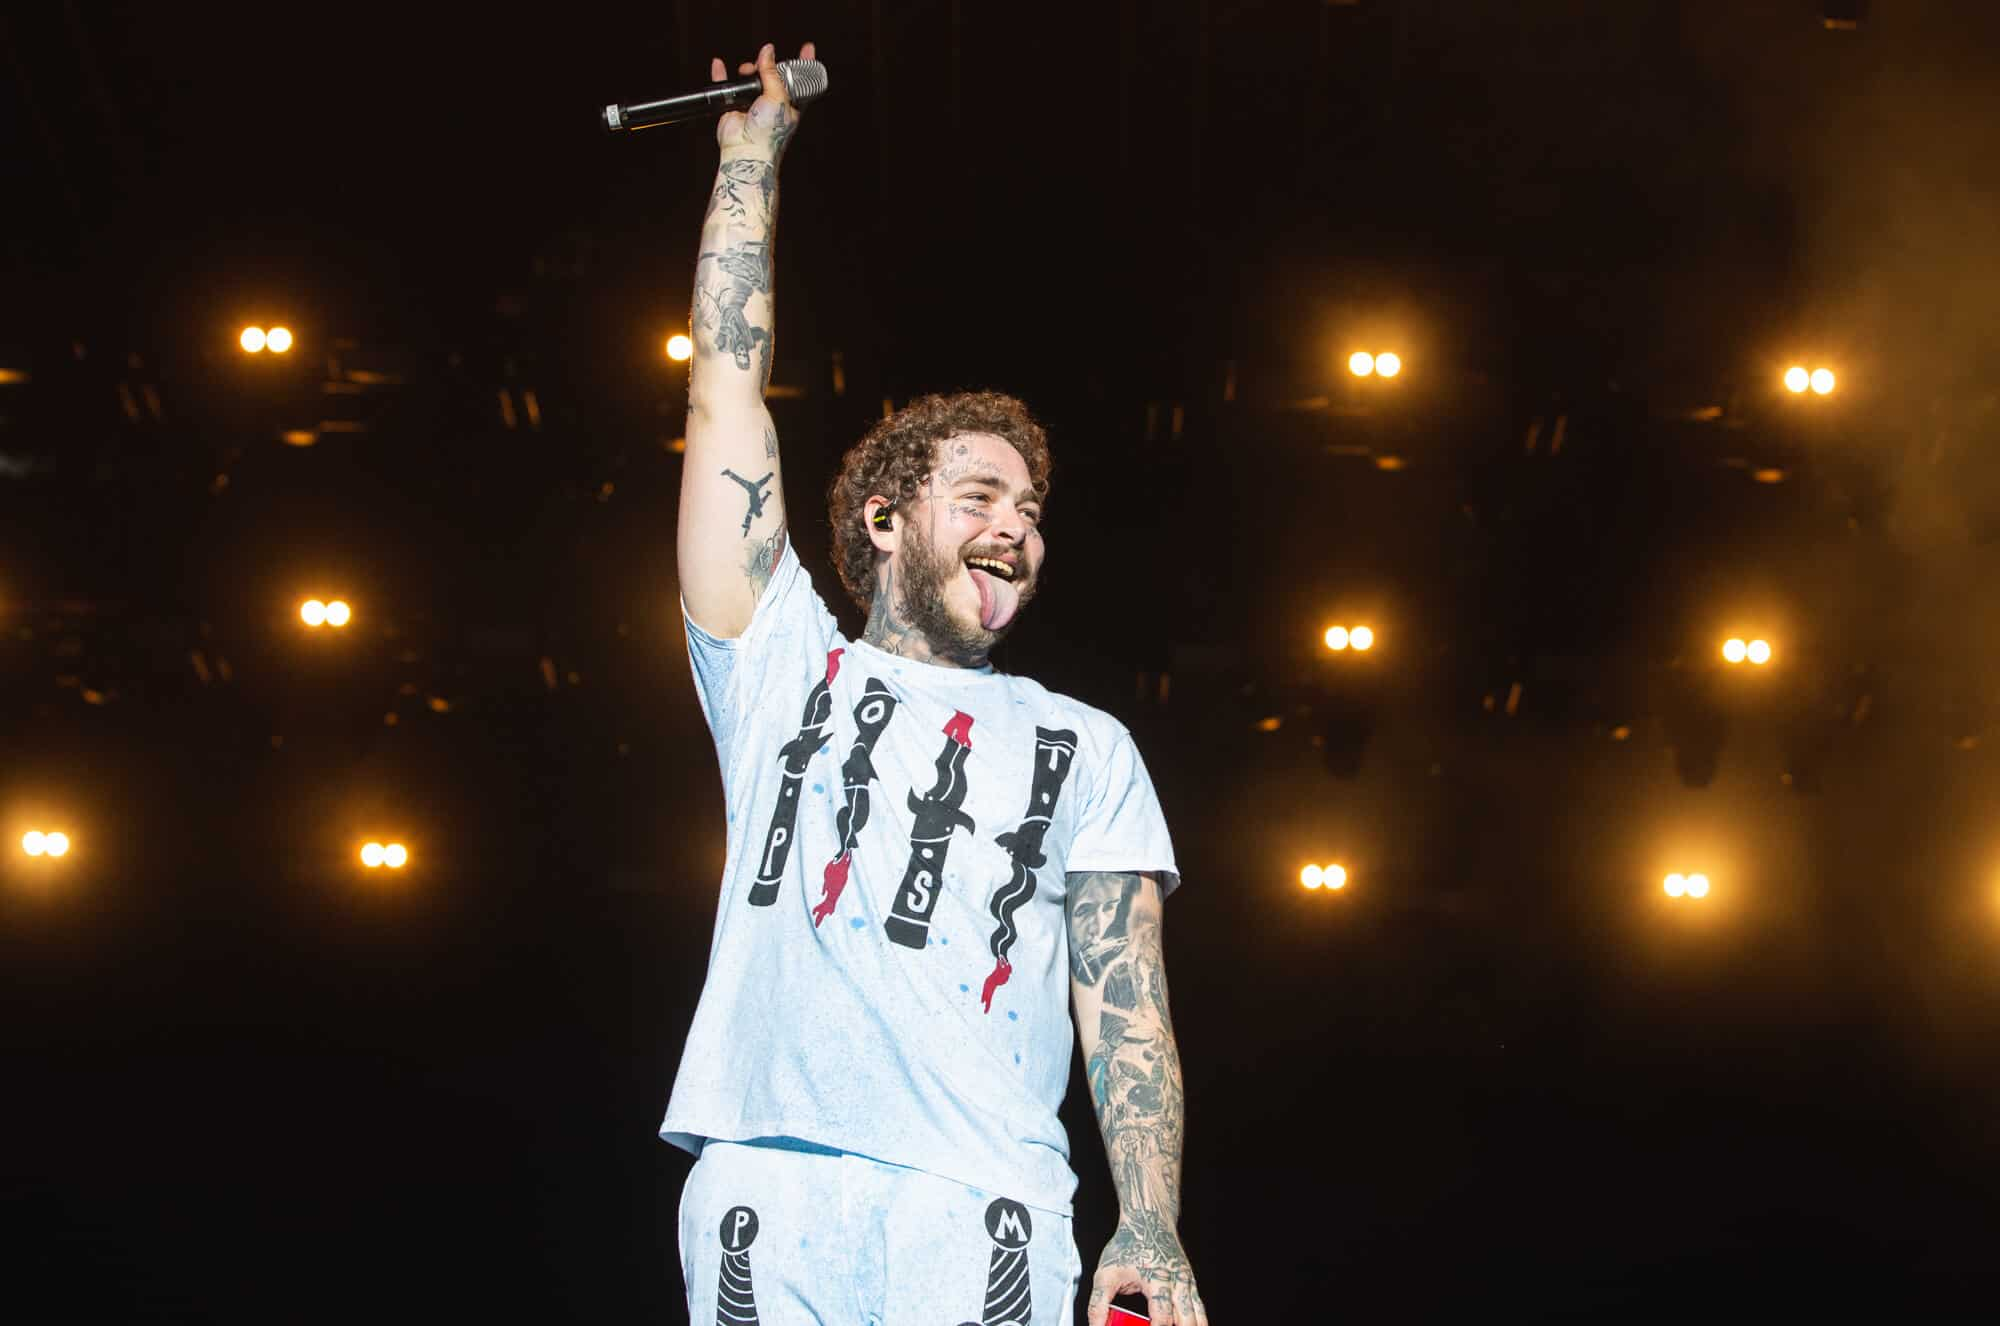 post malone gallenson's gun logo tattoo